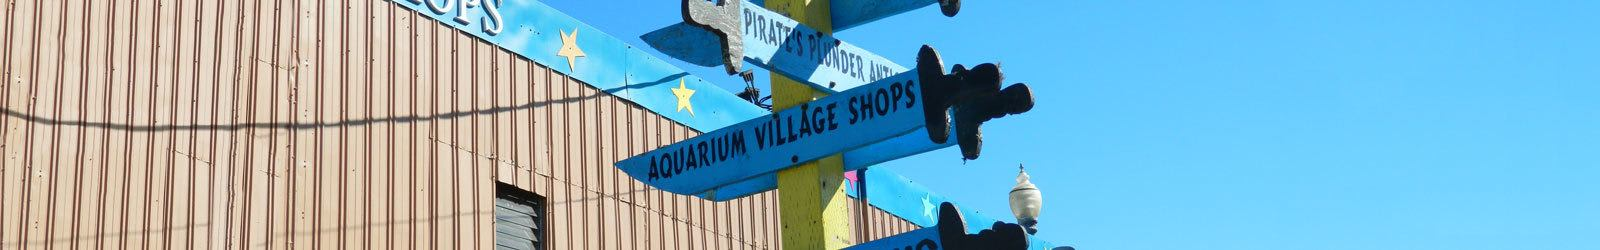 Business listings with Aquarium Village